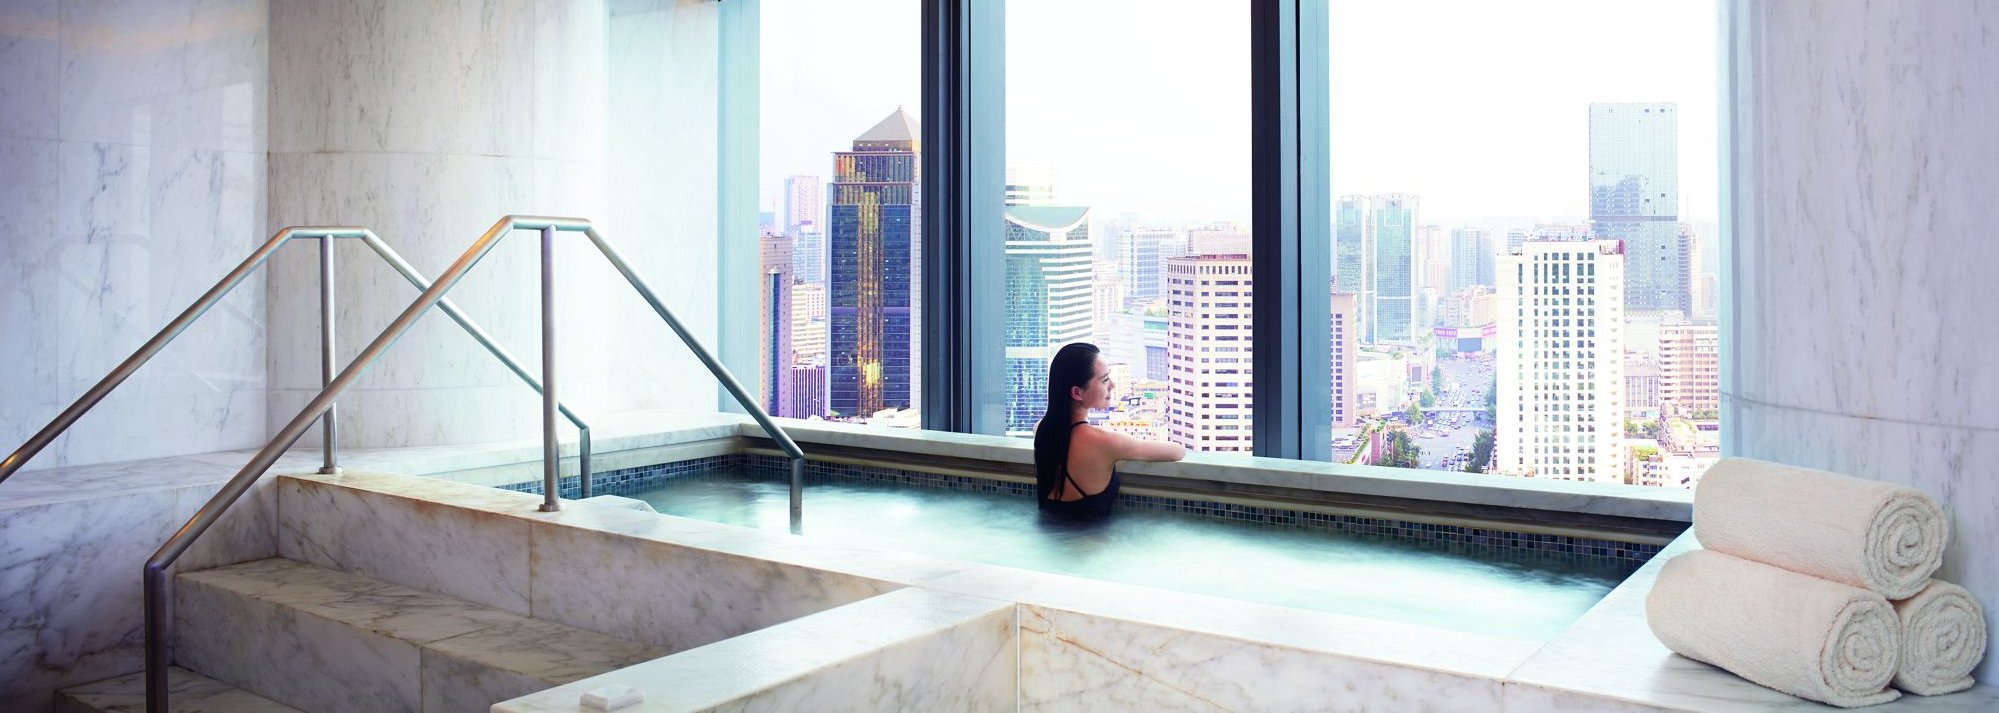 ritz-carlton-chengdu-spa